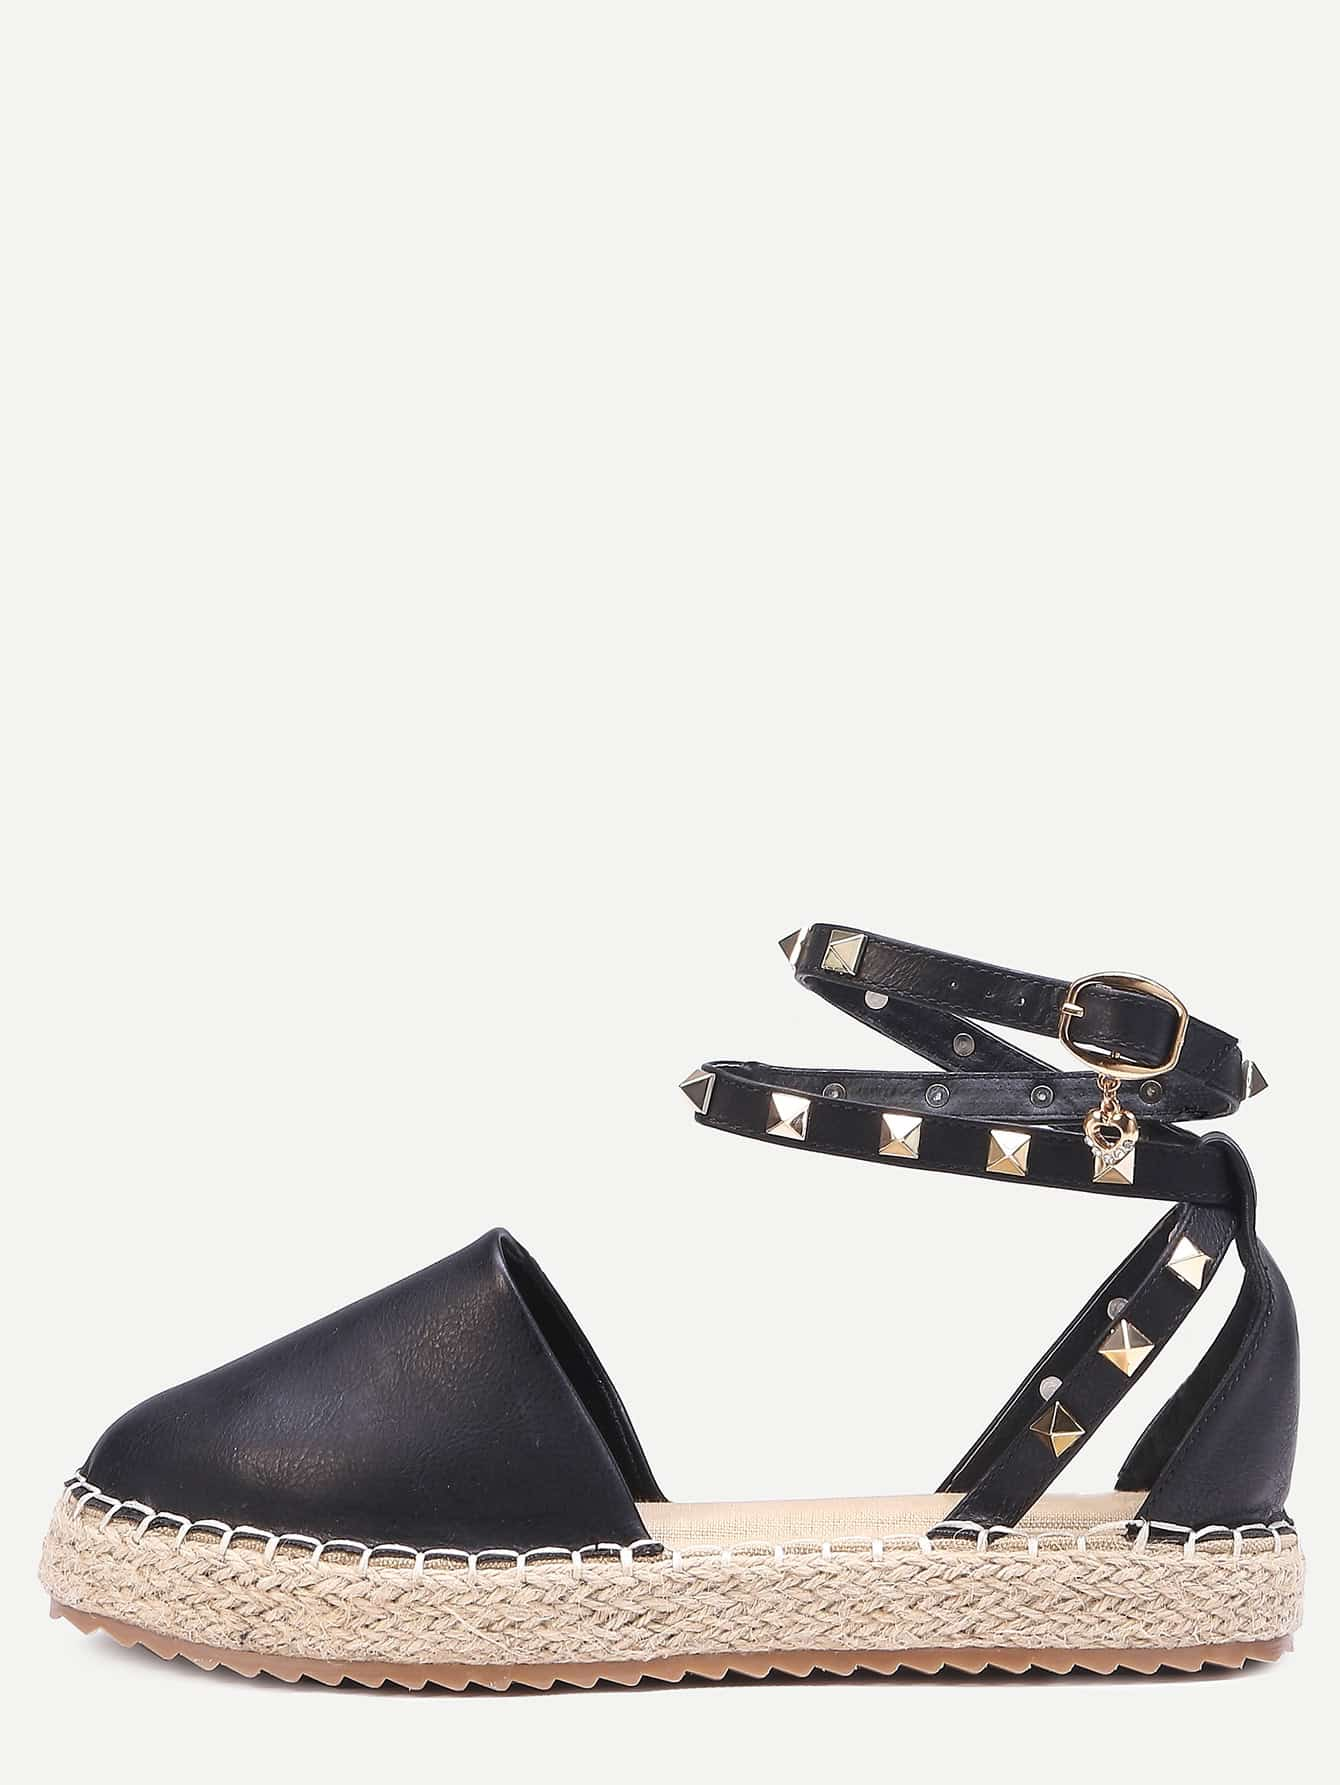 Image of Black Buckled Ankle Strap Faux Leather Flatform Sandals